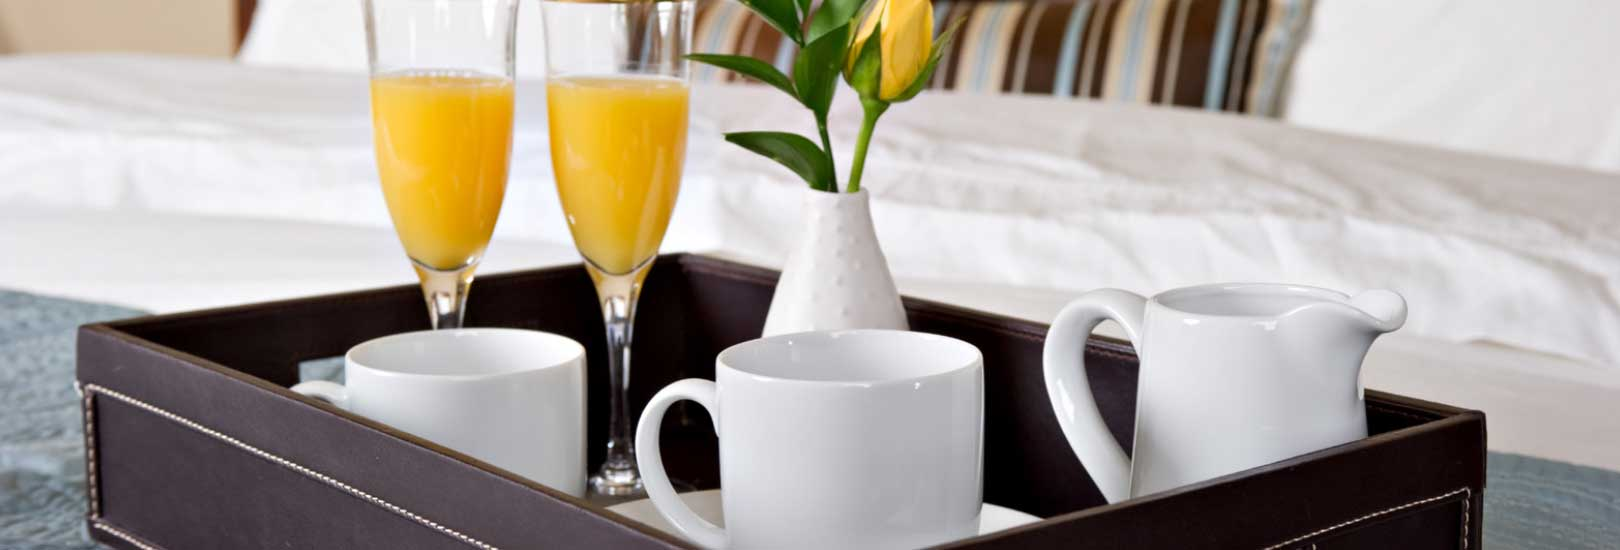 Drinks tray with coffee, orange juice and a flower center piece